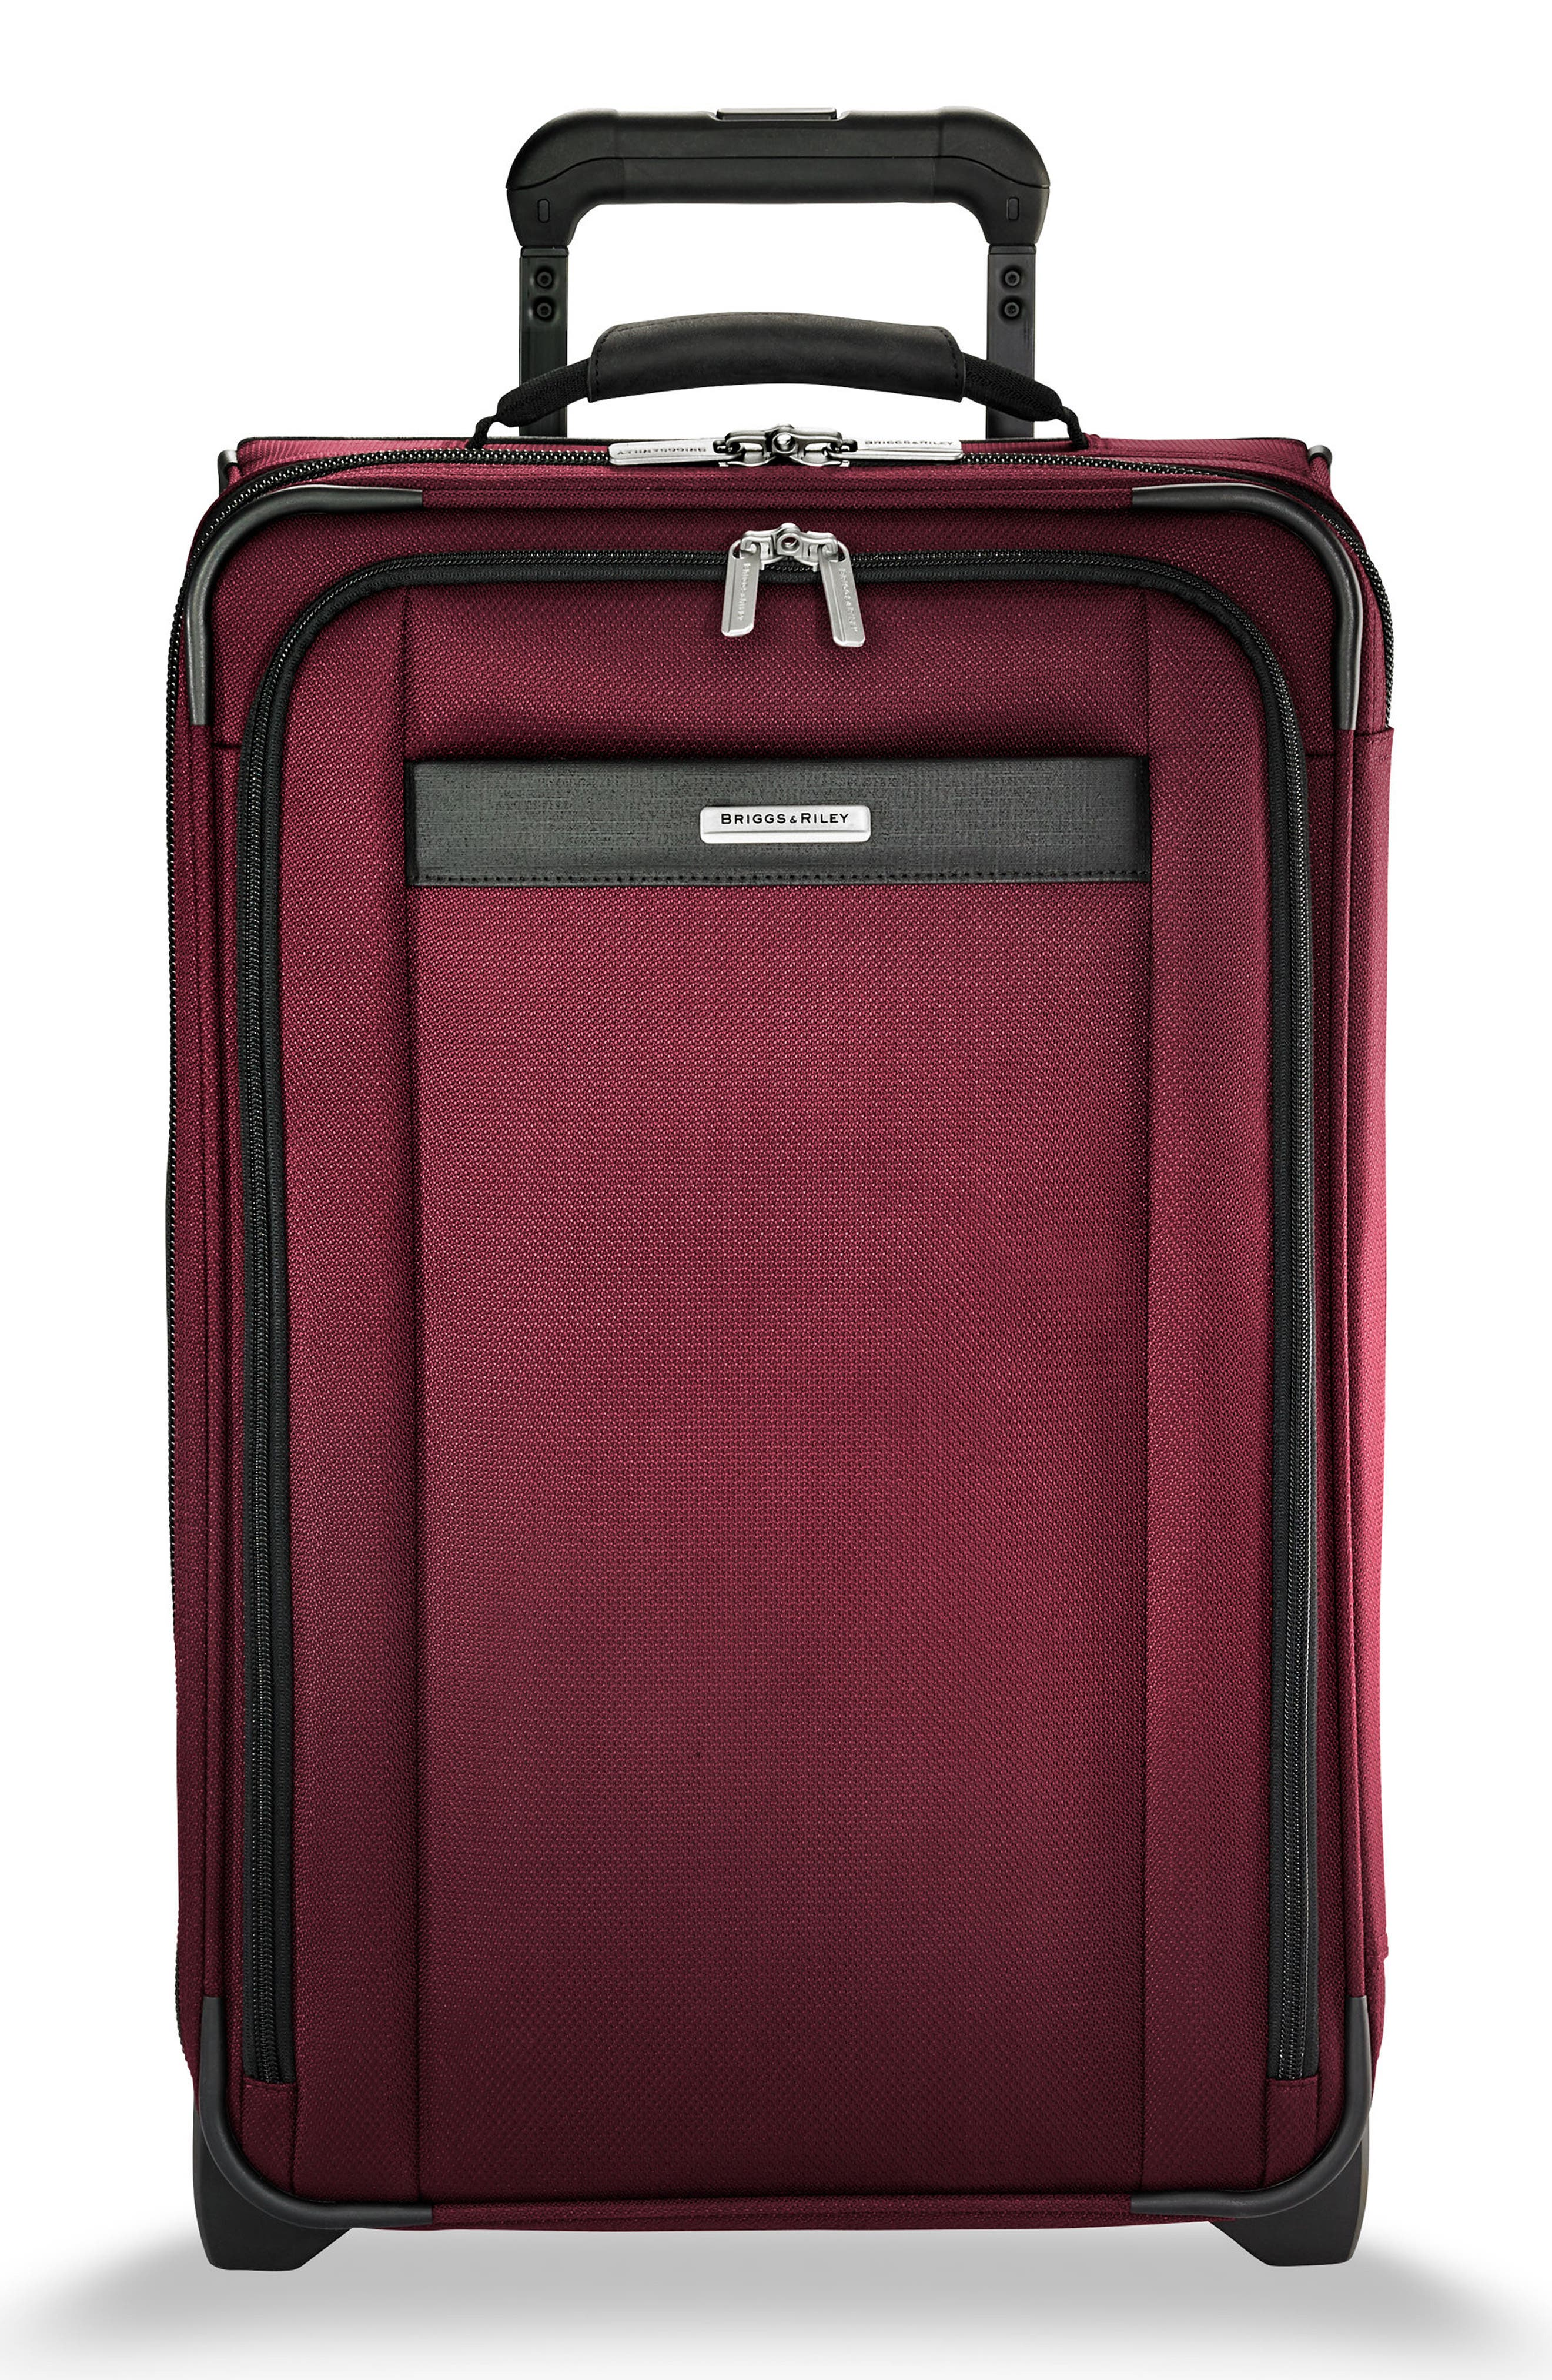 Briggs & Riley Transcend 400 22-Inch Wheeled Carry-On